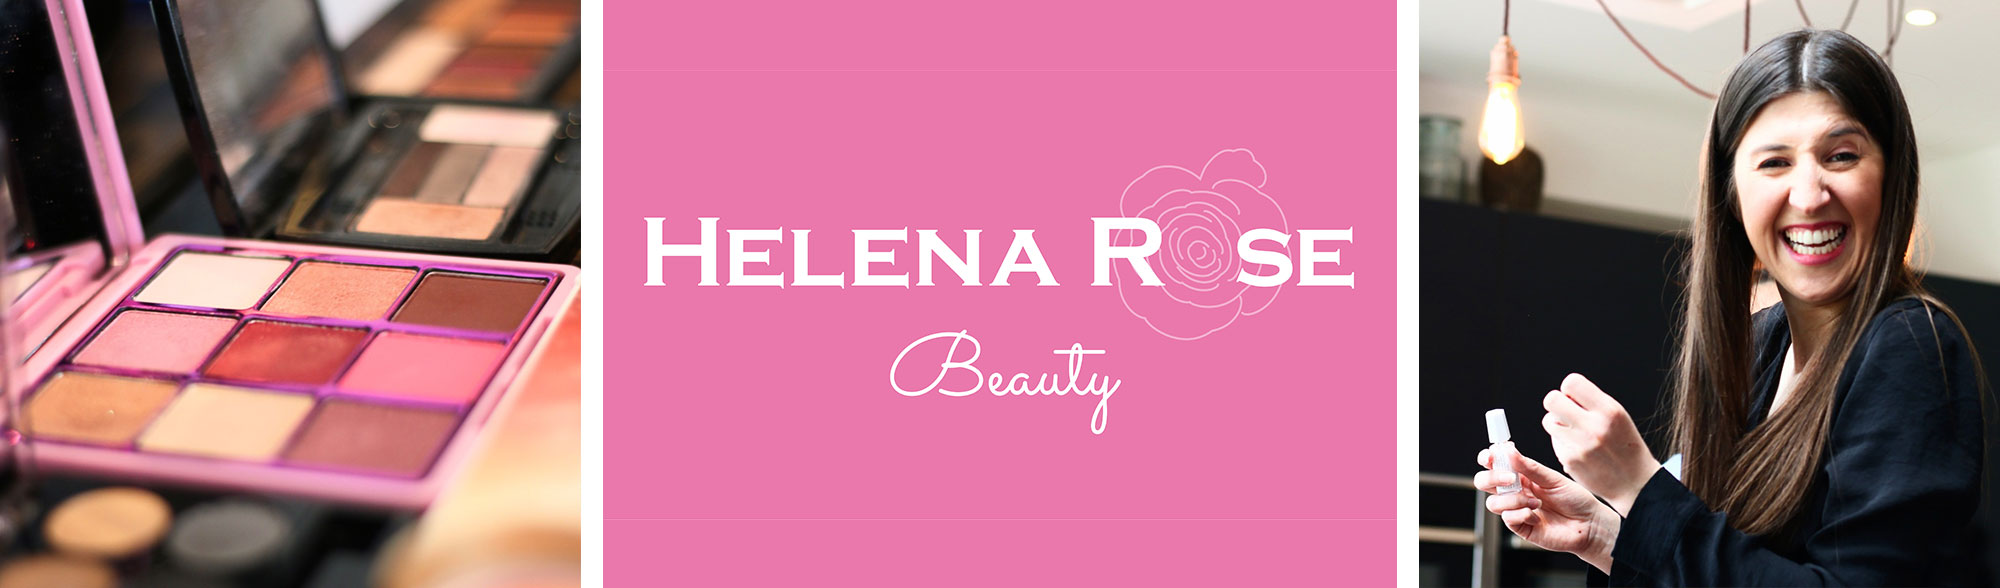 Brand and logo design for Helena Rose Beauty